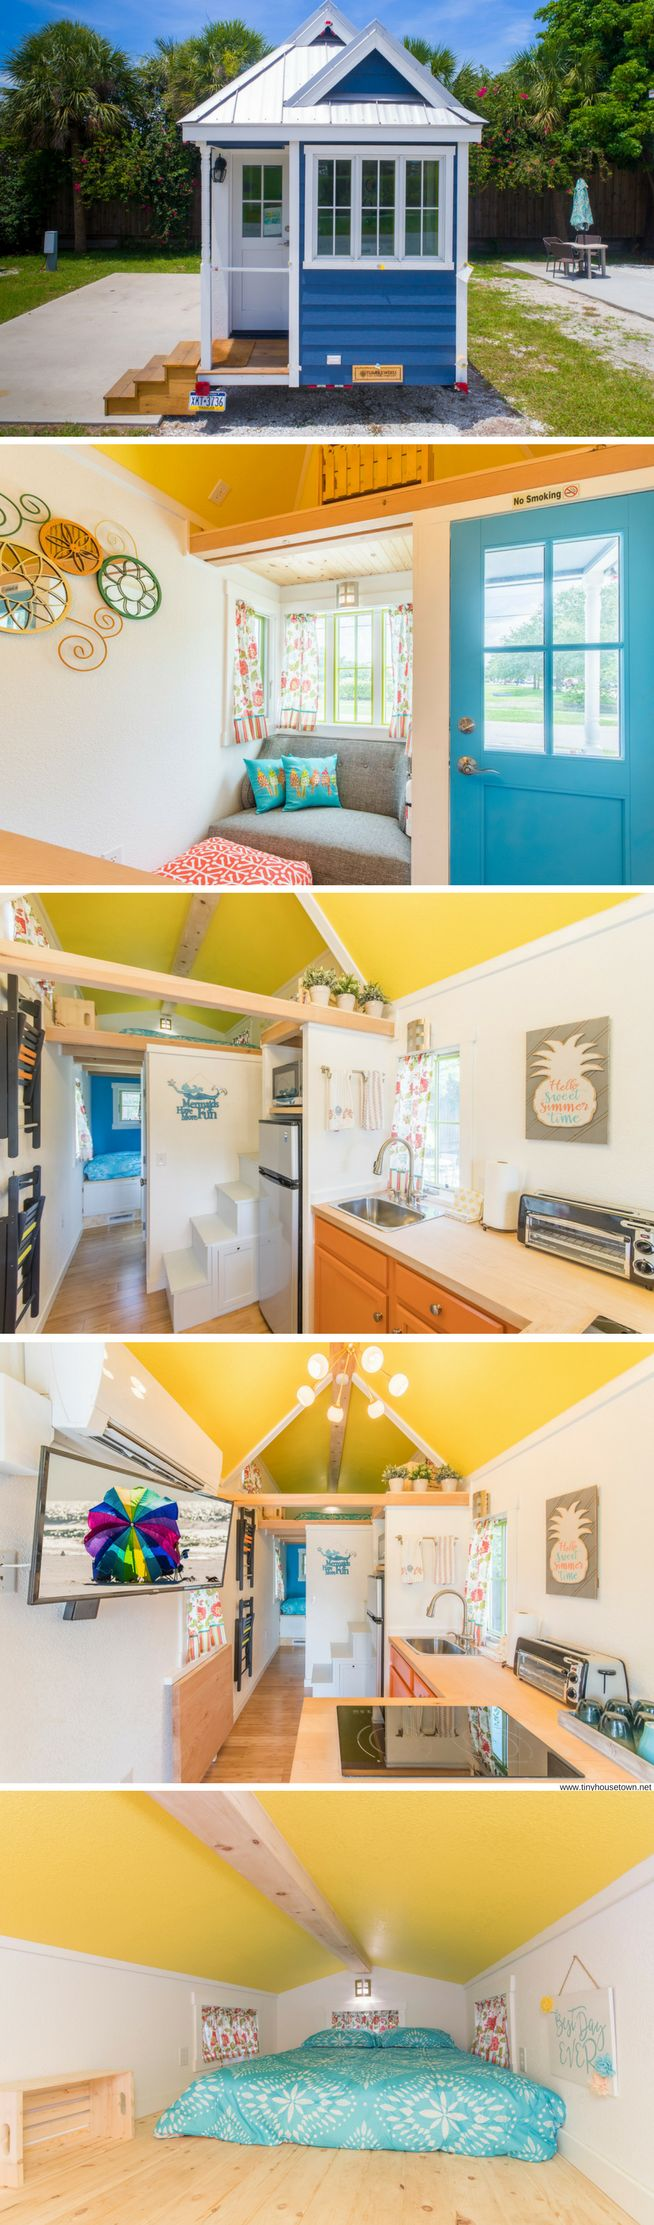 Eleanor: a beautiful blue tiny house for rent at the Tiny House Siesta resort in Florida